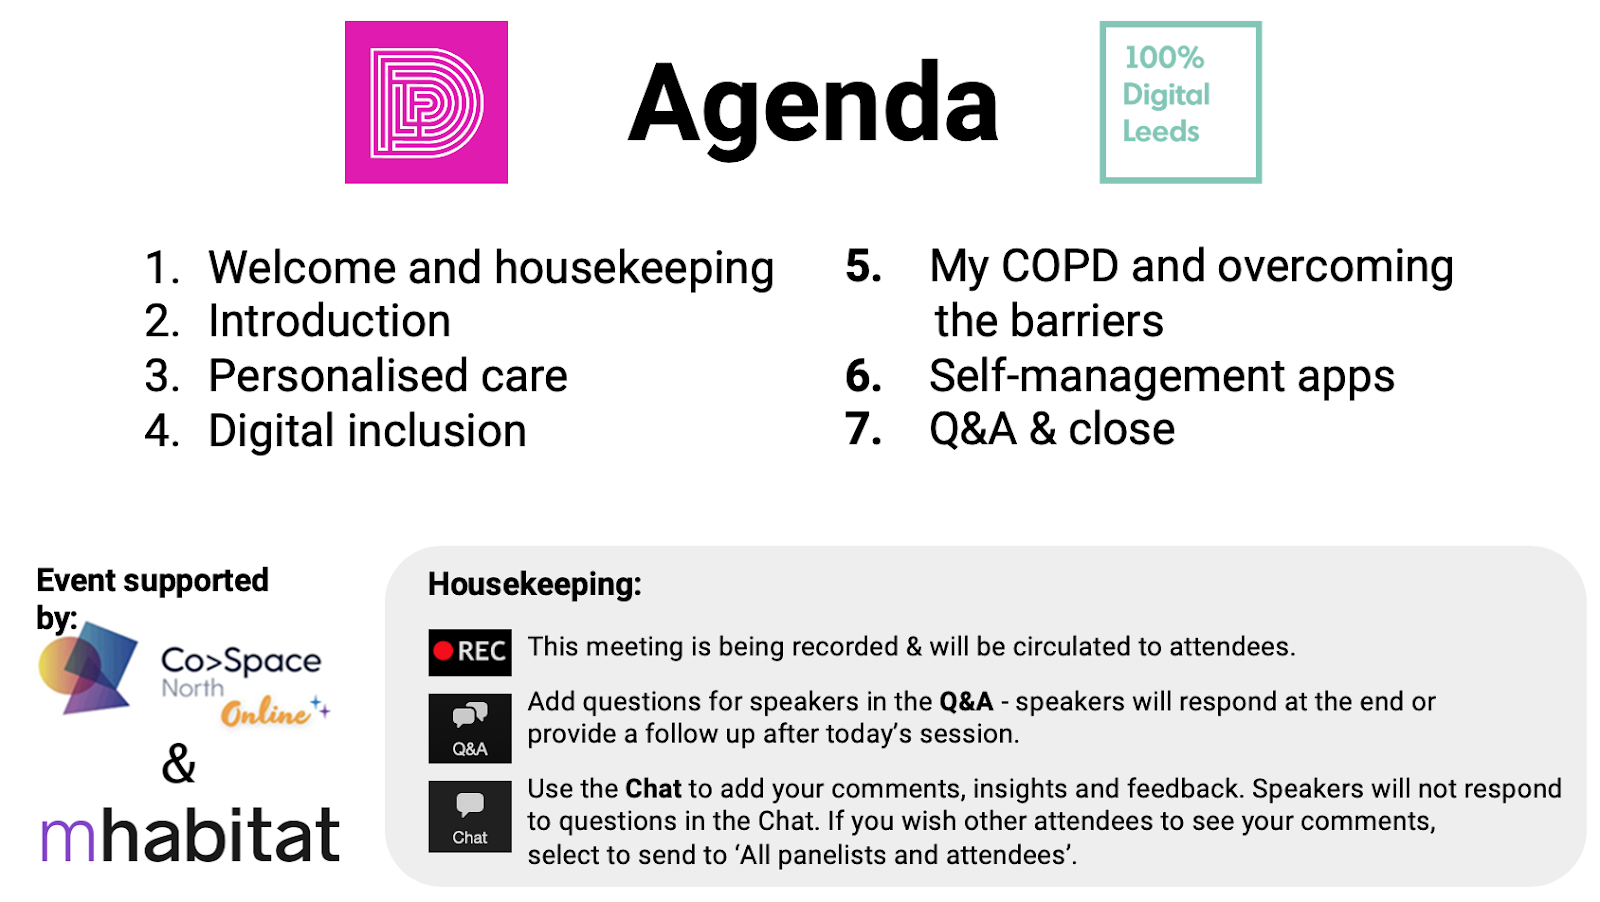 Example 'welcome' slide including logos, agenda, housekeeping rules